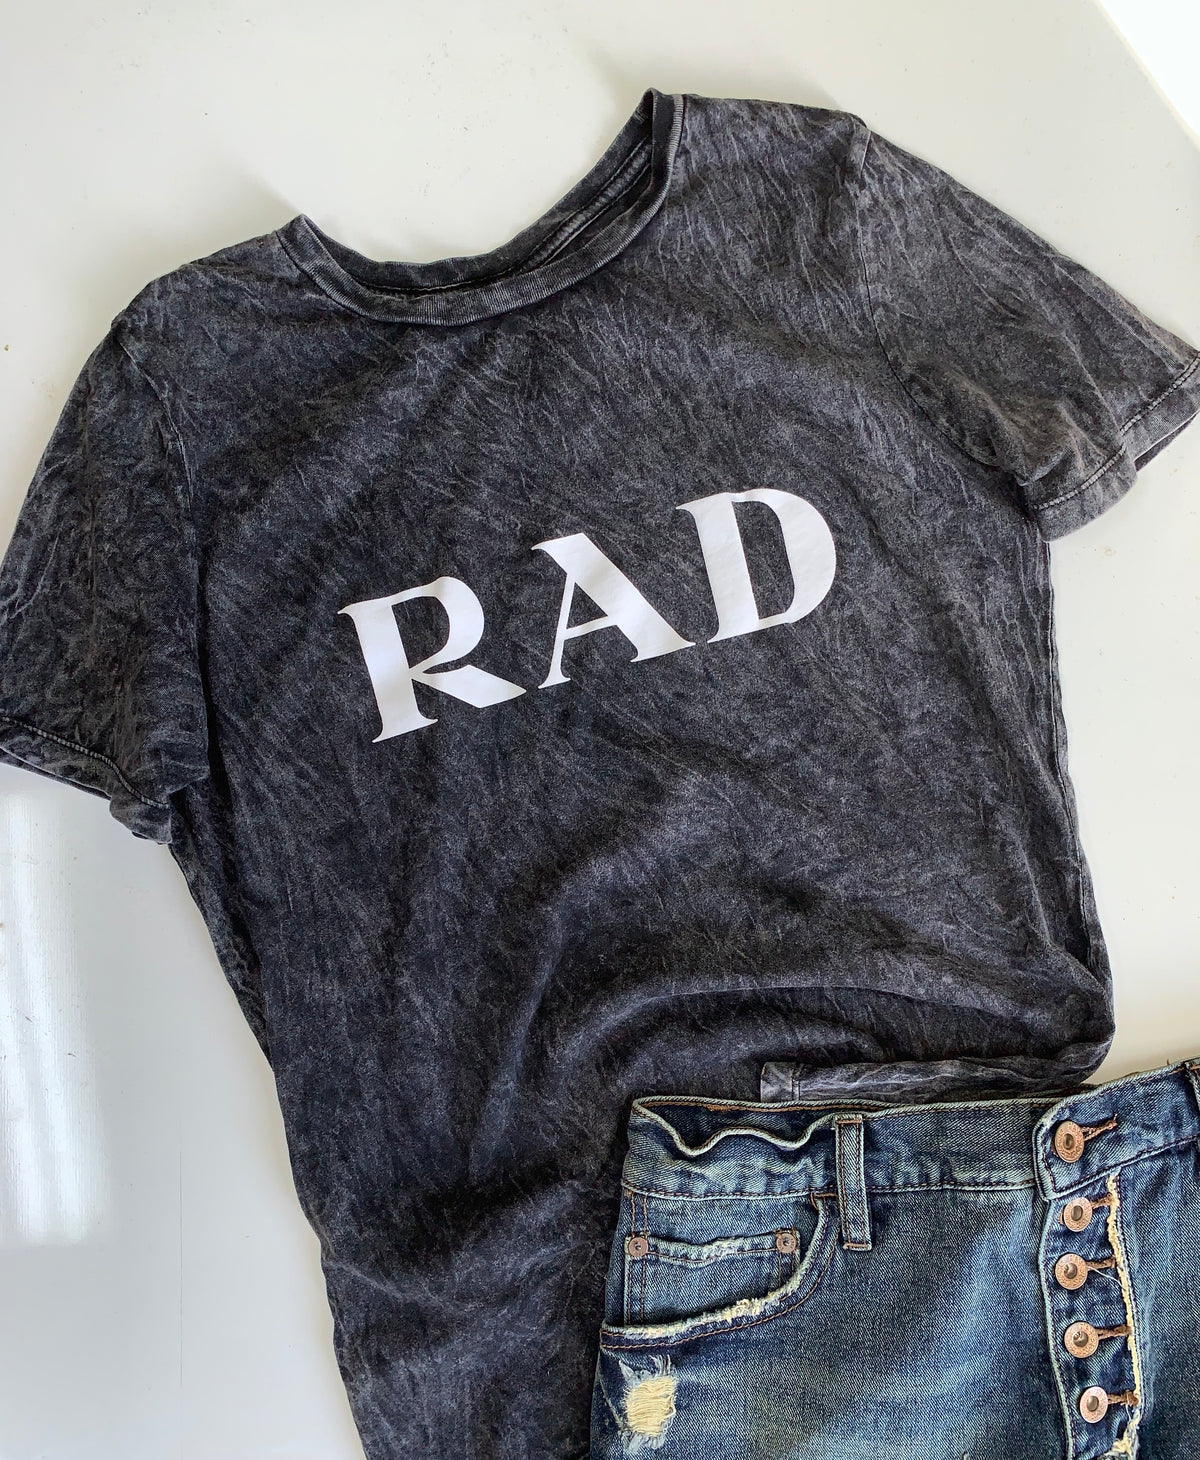 Rad Fashion Shirt in Mineral Wash